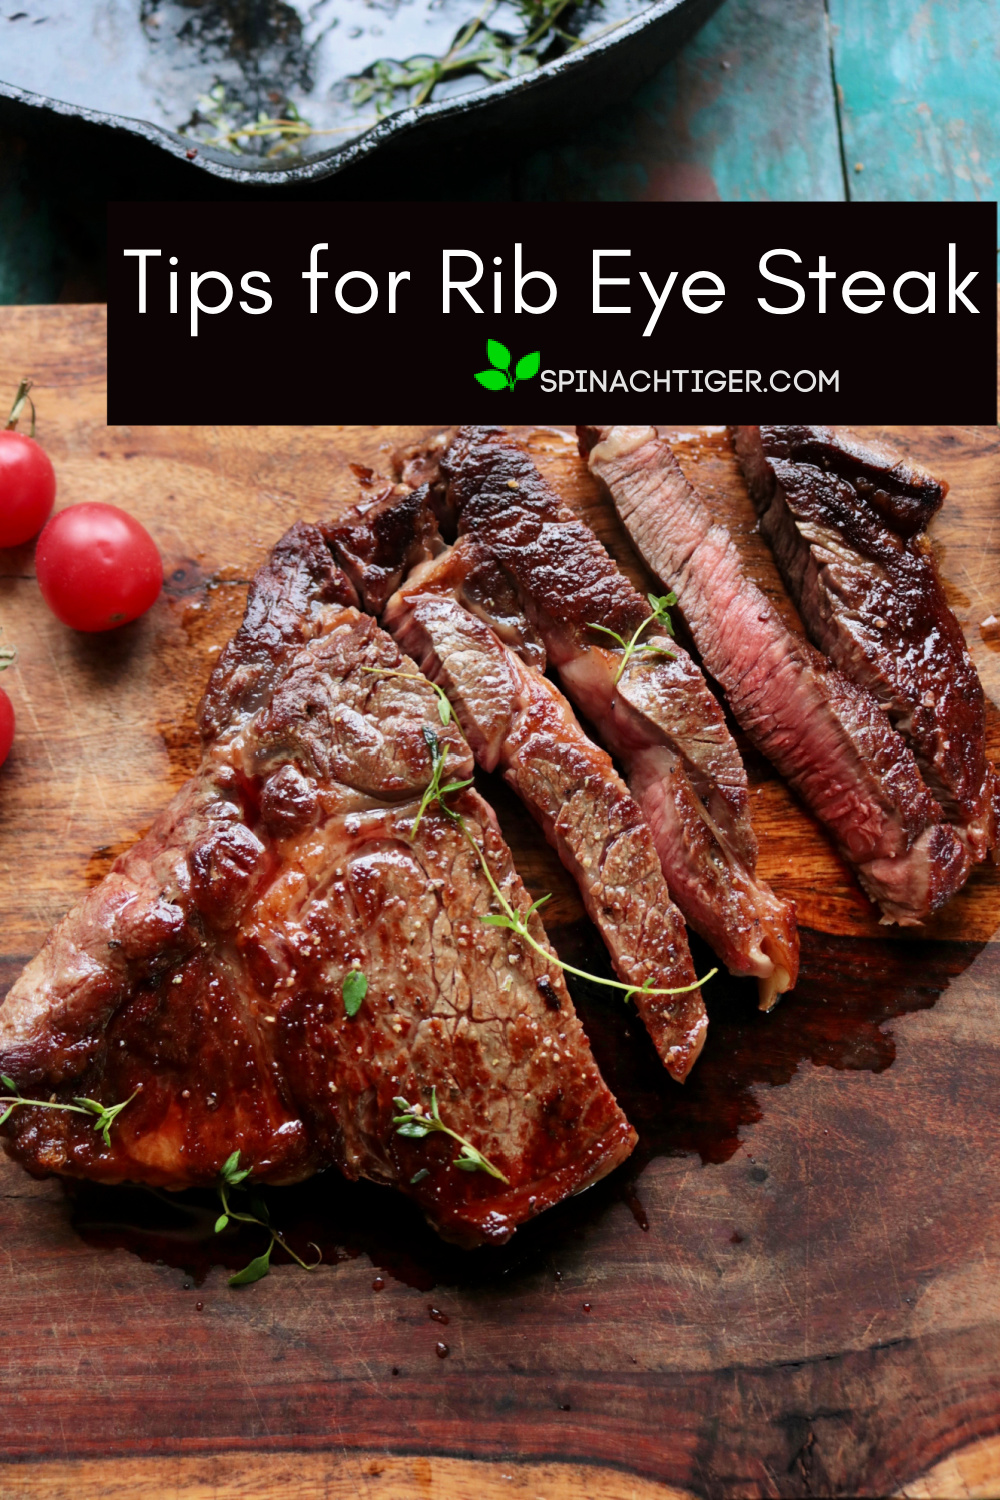 Tried and true perfect ribeye steak cooked in cast iron on top of stove, flipped and put in oven. Get all the tips for the perfect steak. #ribeye #spinachtiger #castironsteak via @angelaroberts